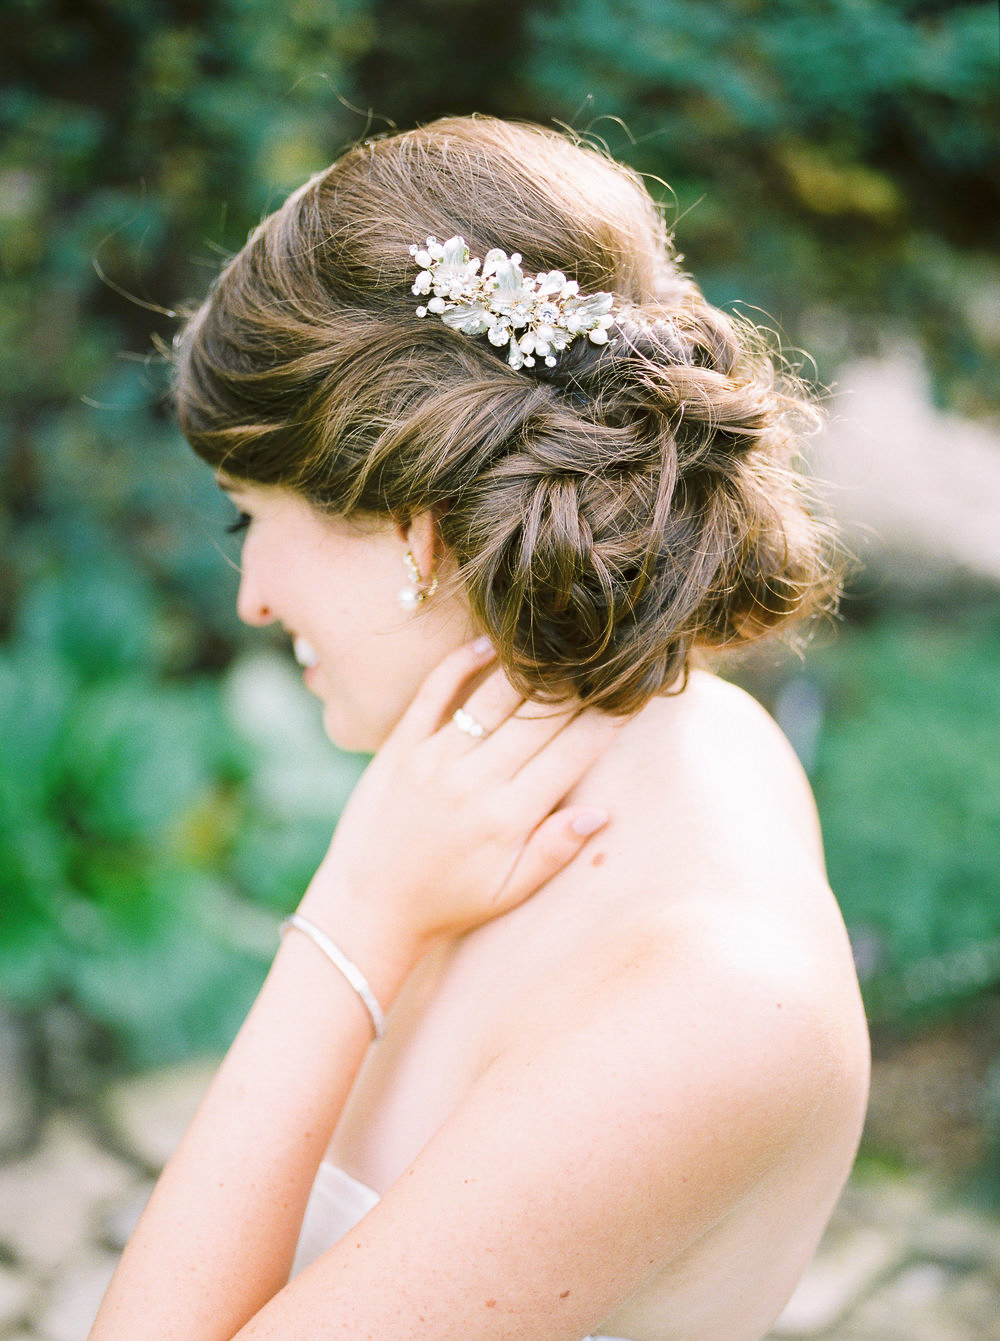 allure-hair-and-makeup-vineyard-bride-swish-list-niagara-gta-3.jpg